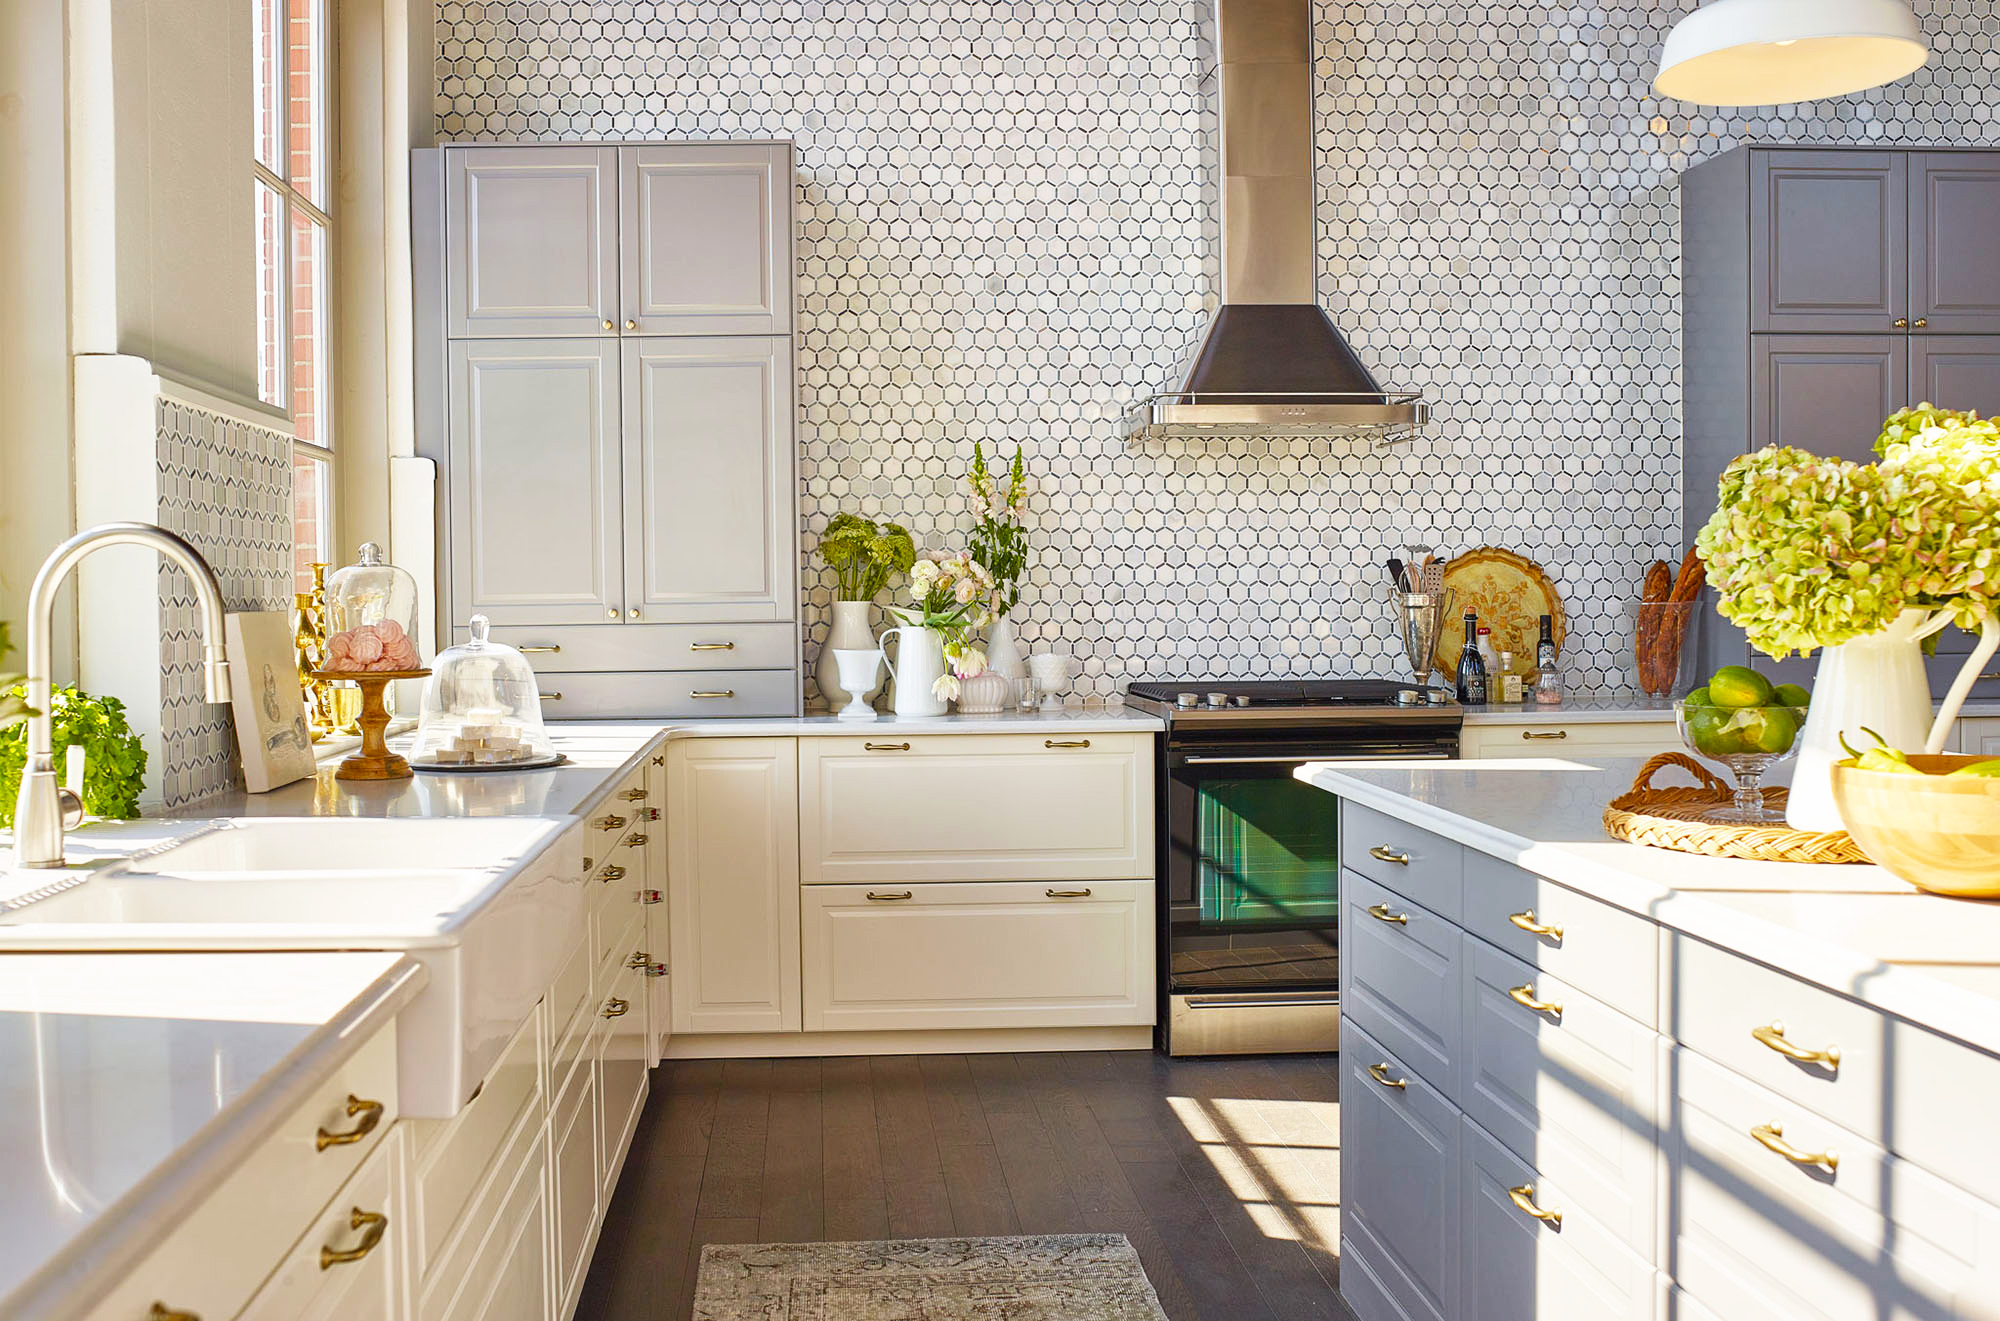 cost-to-remodel-kitchen-renovations-with-average-cost-remodeling-kitchen-for-modern-white-kitchen-cabinets-designs